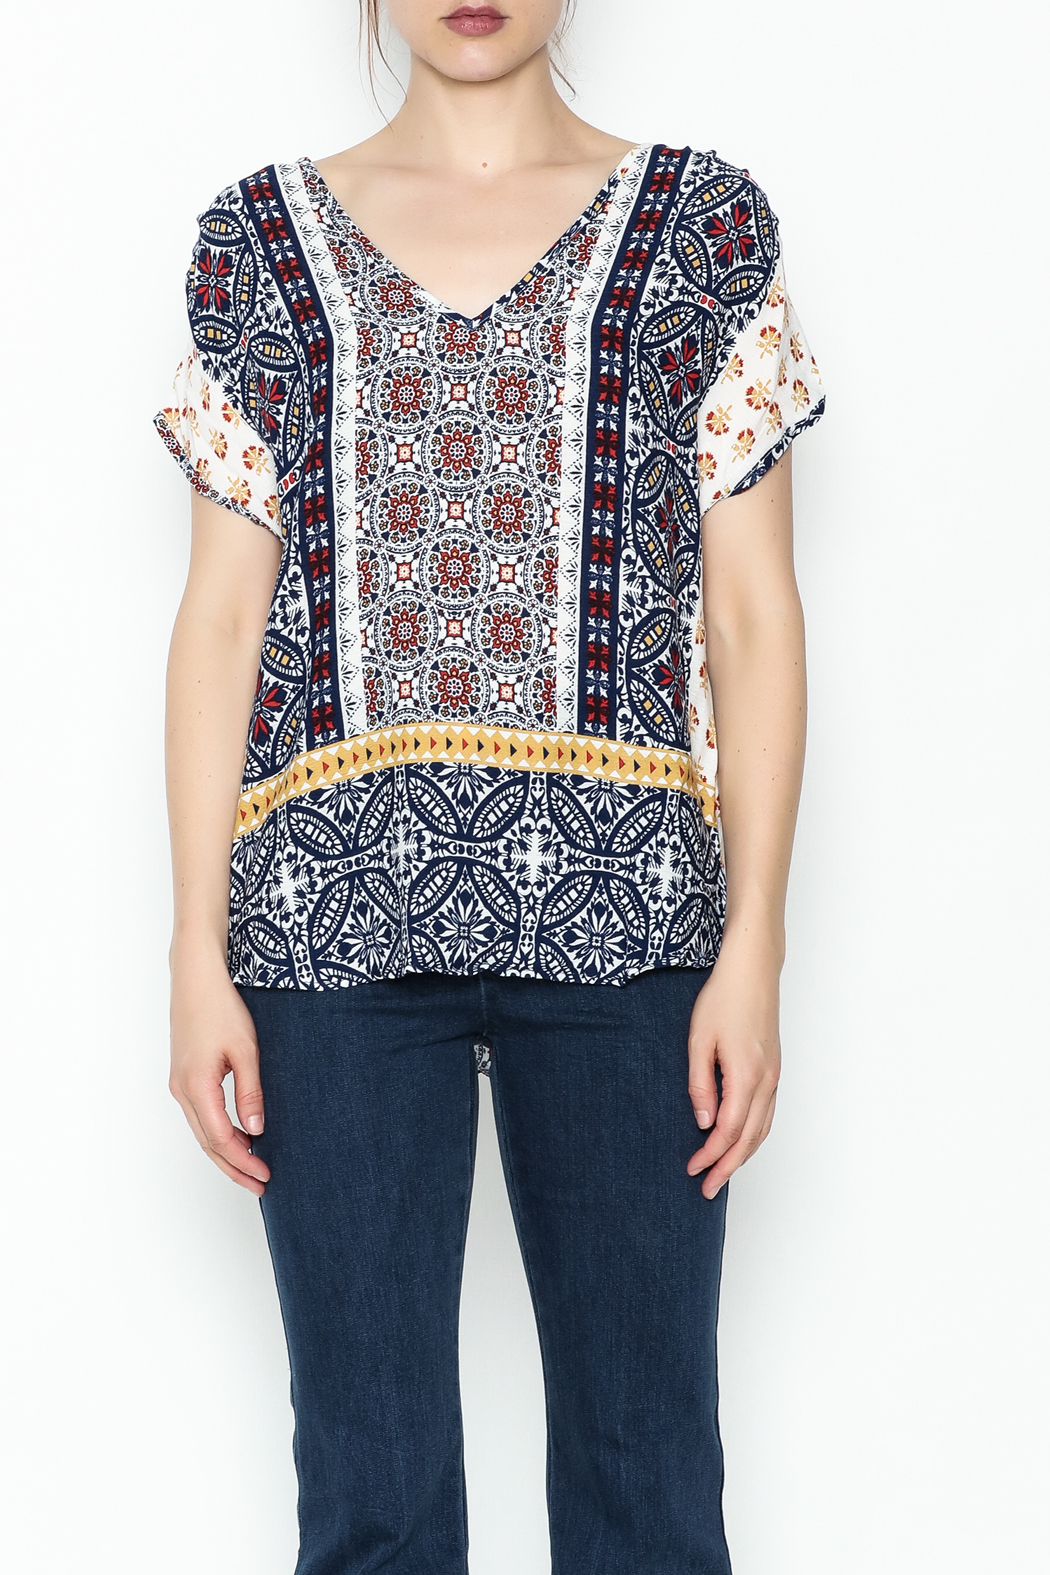 Renee C Printed Keyhole Top - Front Full Image